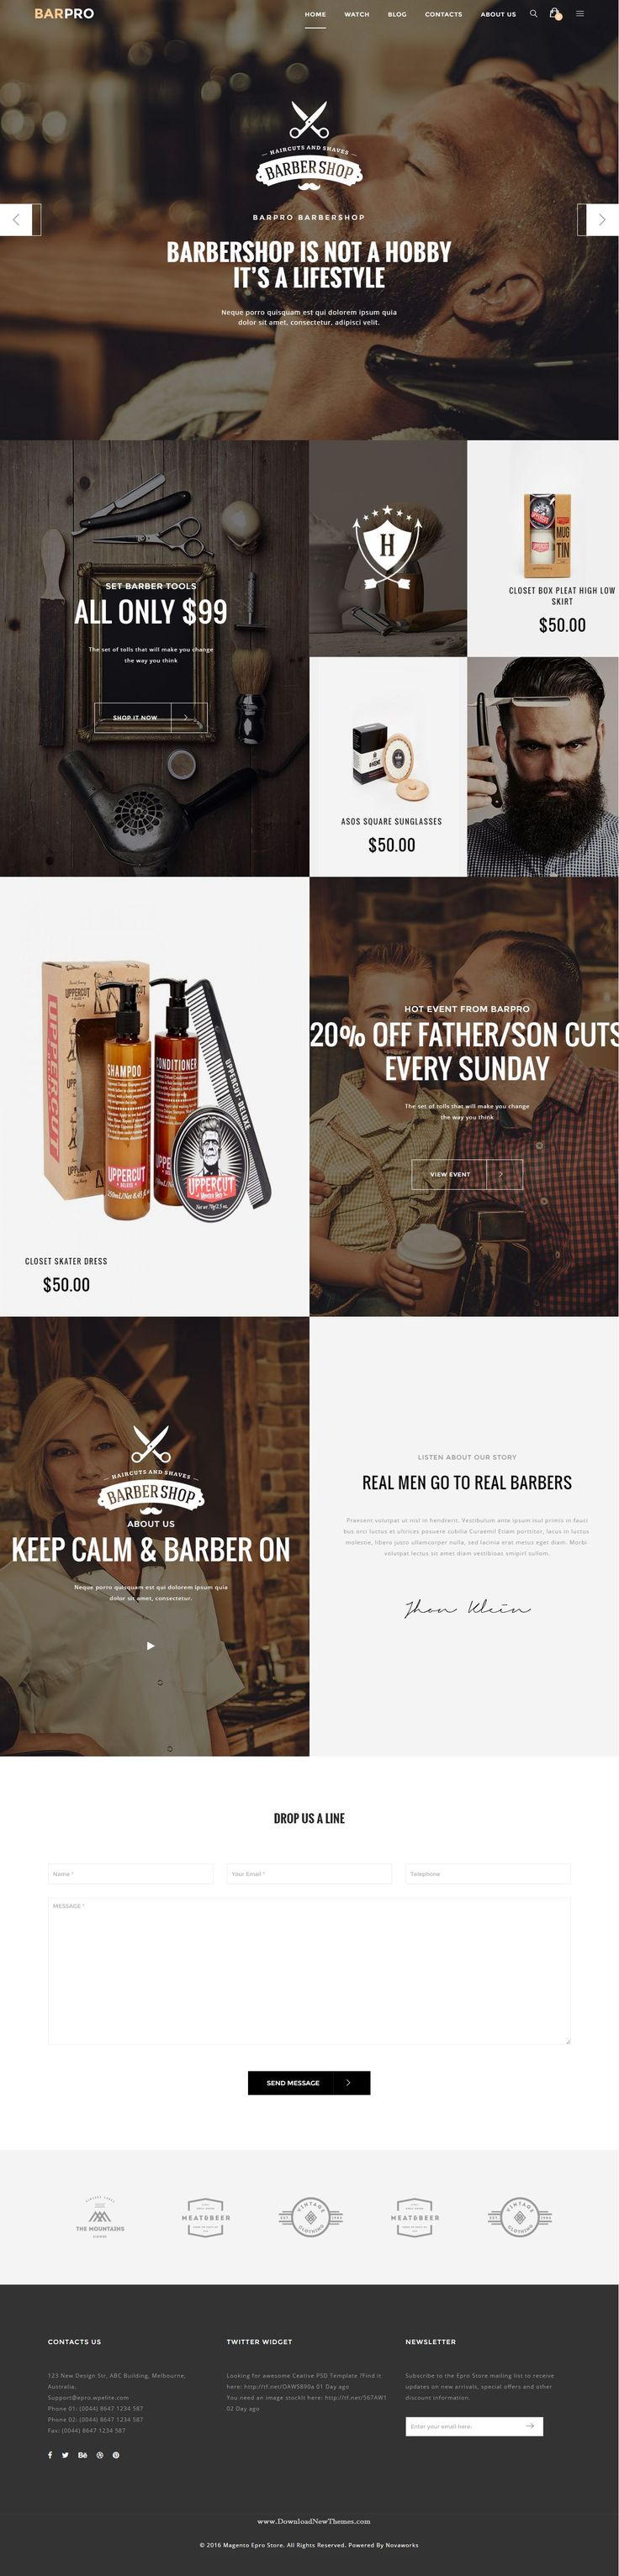 Epro - Premium Responsive Magento Theme. It has 8 stunning demos, 5 product layouts with creative design perfect for viral online store website. Demo #barber #hairstyle #barbershop Download Now➝ http://themeforest.net/item/epro-premium-responsive-magento-theme/15373347?ref=Datasata